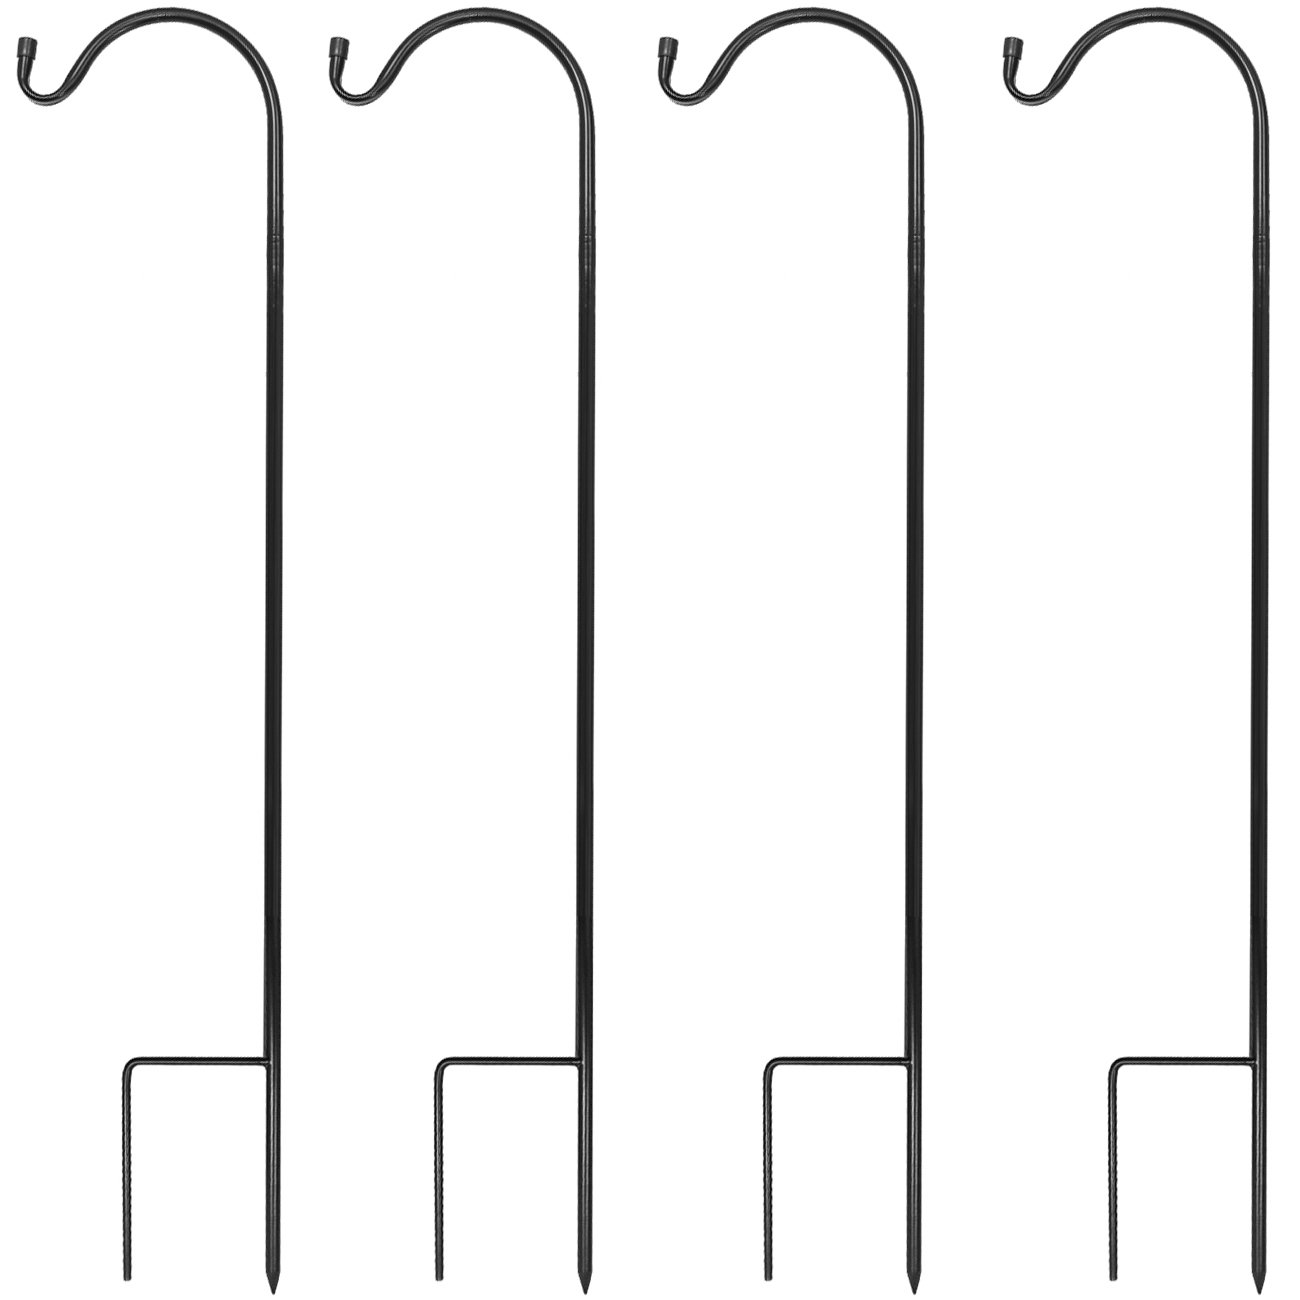 Sorbus Shepherd's Hooks - Set of 4 Extendable Garden Planter Stakes for Bird Feeders, Outdoor Décor, Plants, Lights, Lanterns, Flower Baskets, and More! Heavy Duty (4 Pack)